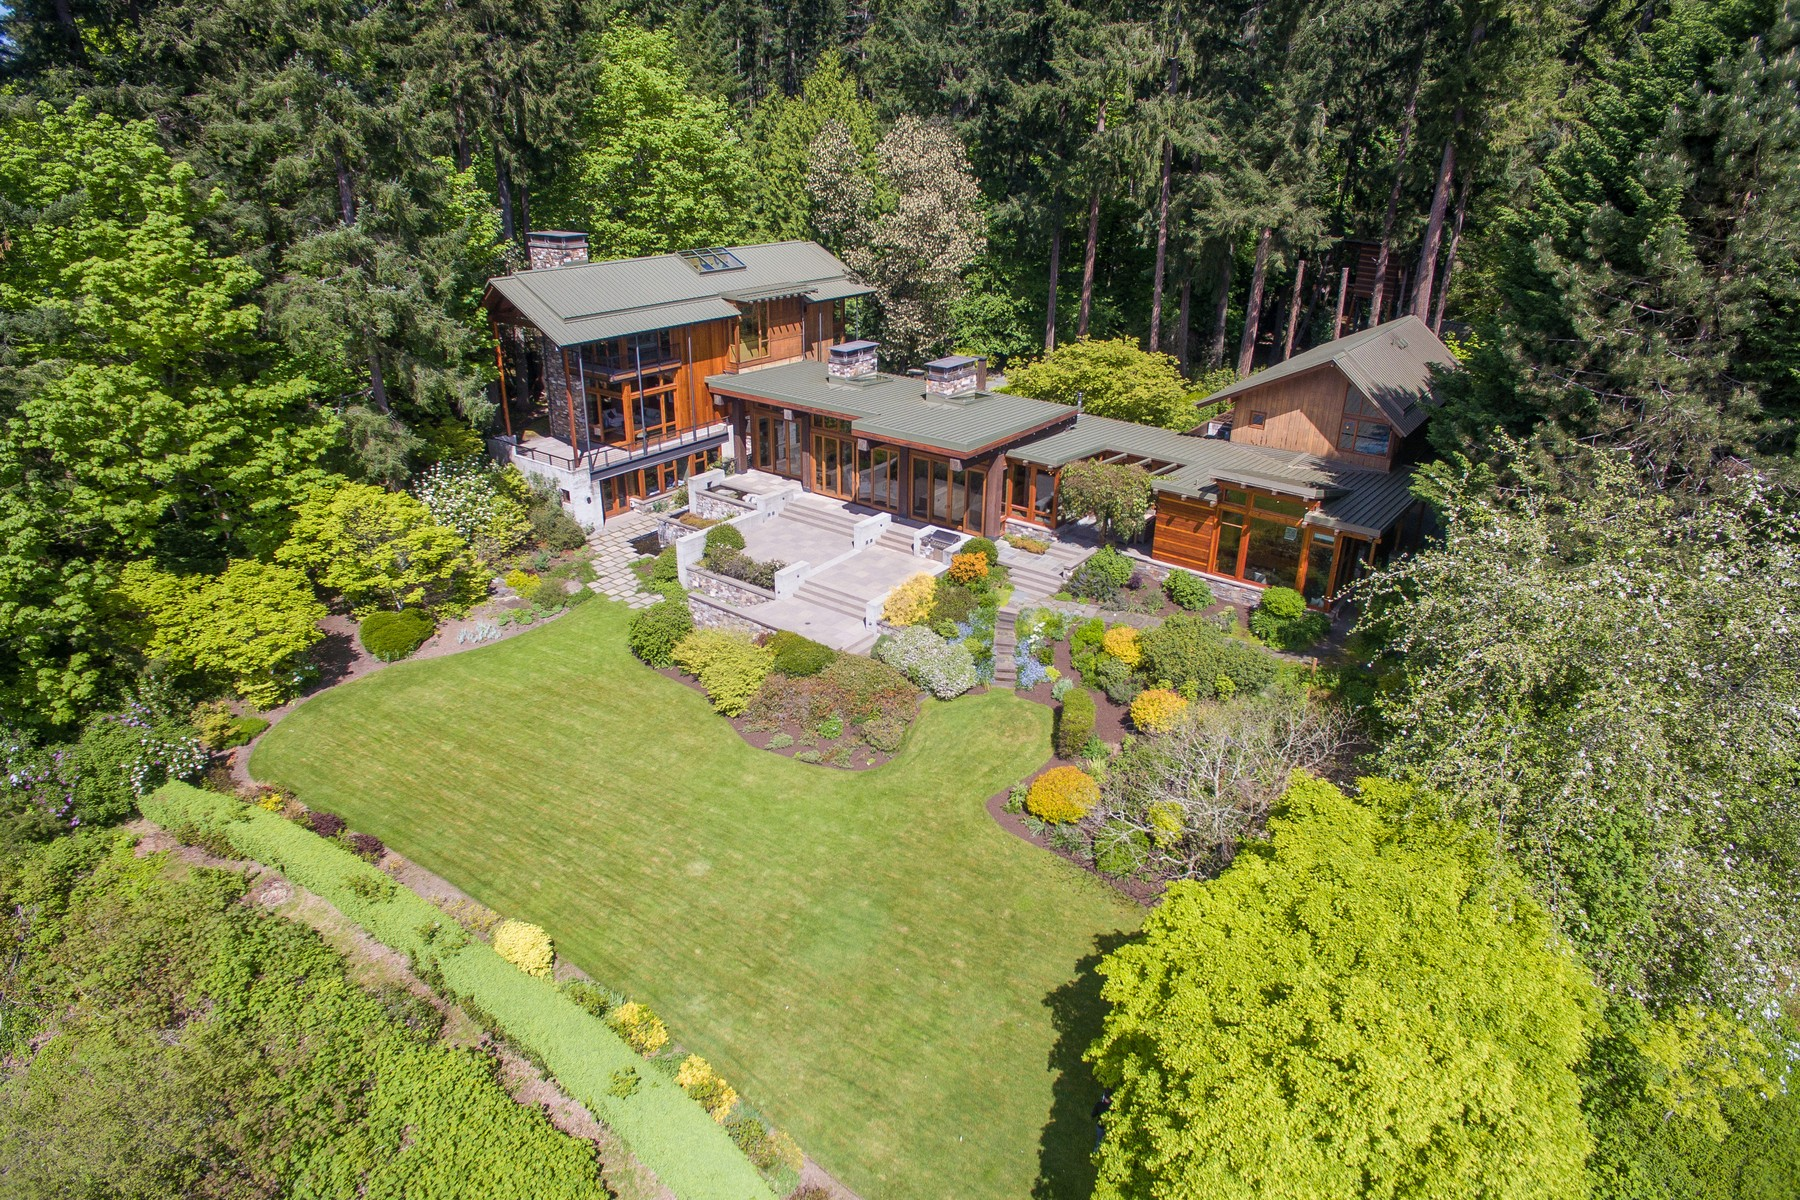 Single Family Home for Sale at Picturesque waterfront estate RES5/3 Undisclosed Bainbridge Island, Washington 98110 United States